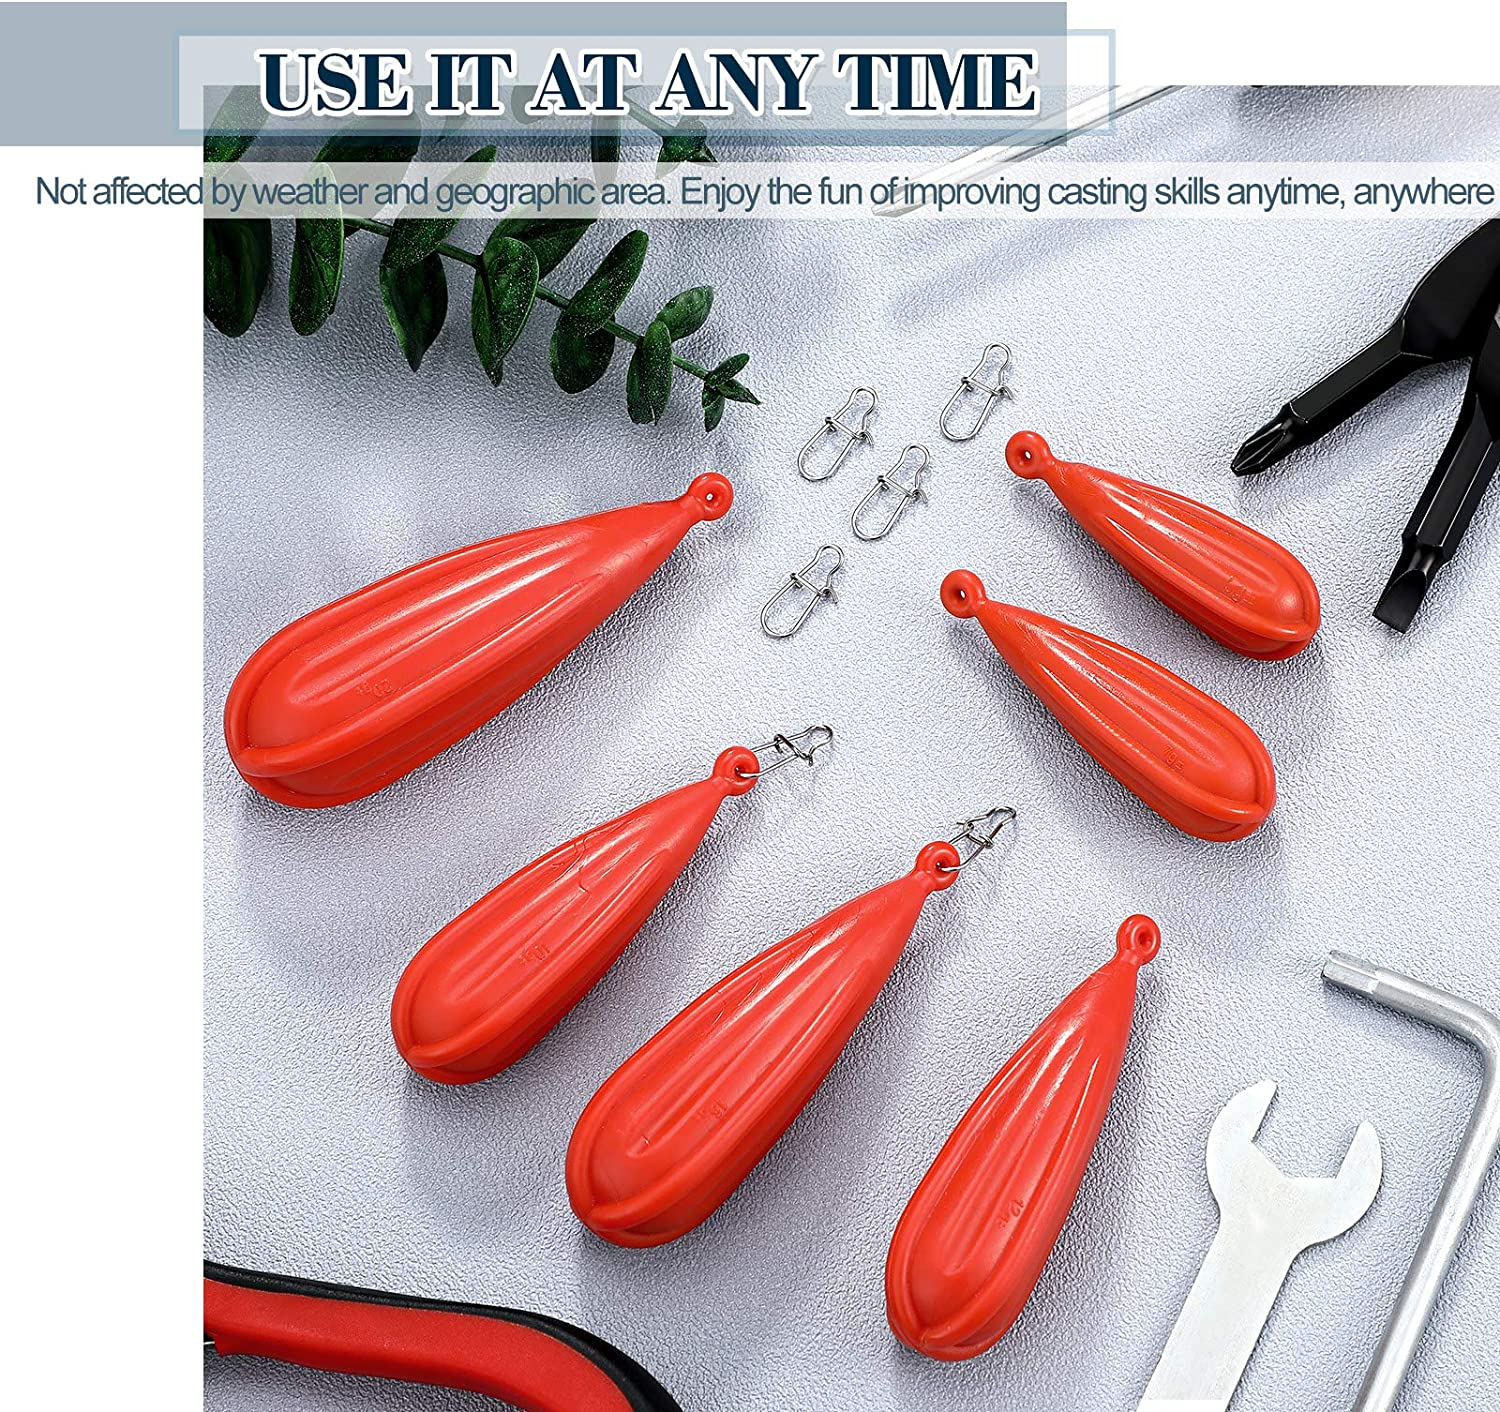 6 Sizes 12 Pieces Fishing Practice Plug Fishing Casting Plug Baitcasting Rubber Practice Plug Suitable for Kids Improving Casting Skill